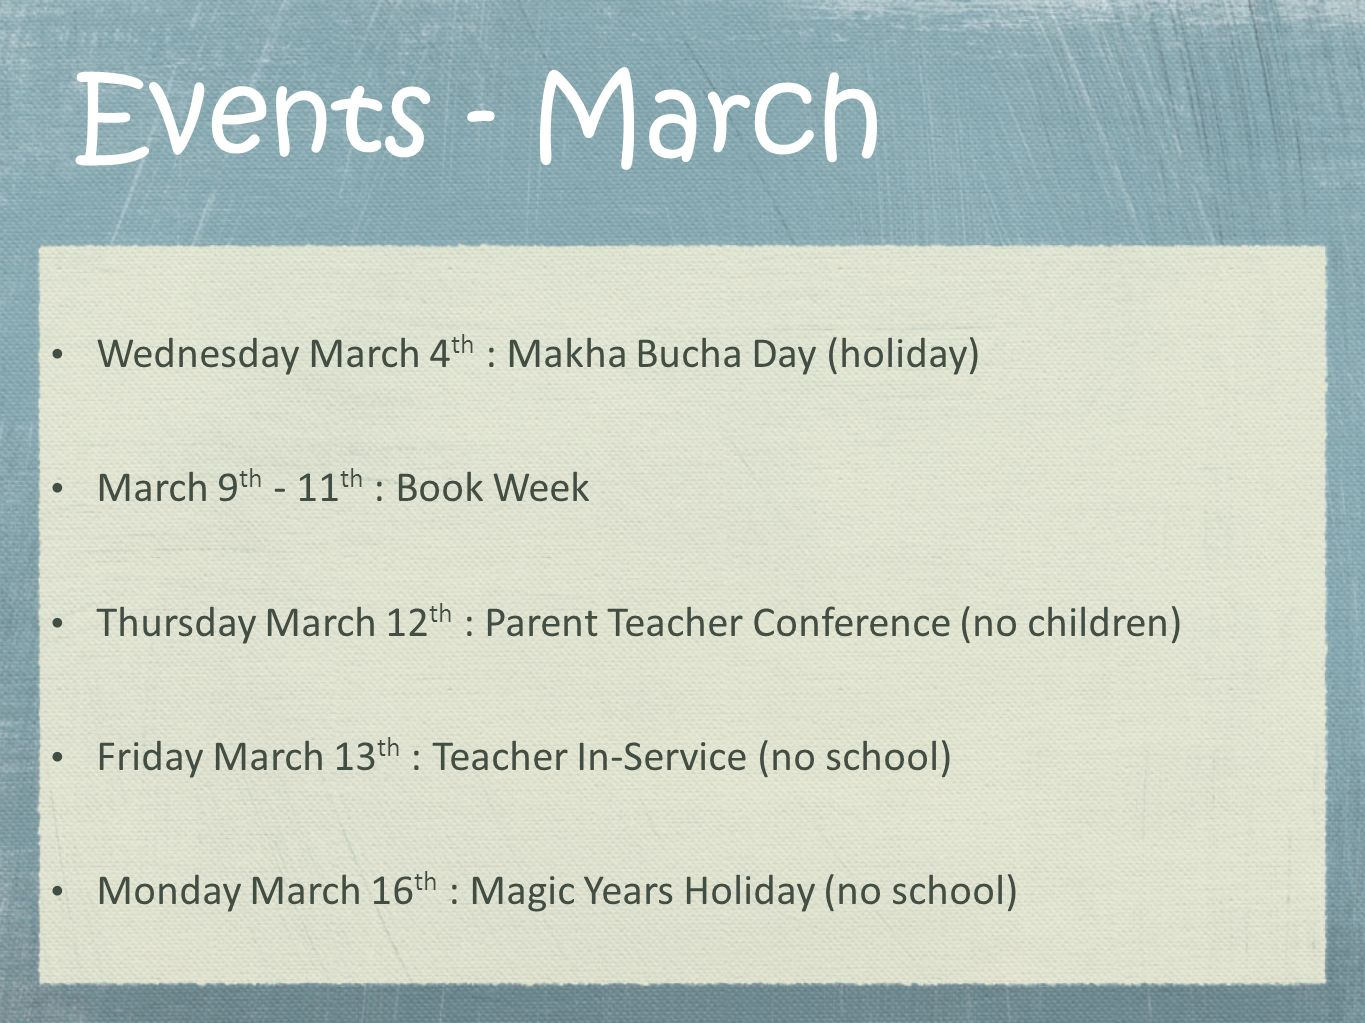 Events - March Wednesday March 4th : Makha Bucha Day (holiday)